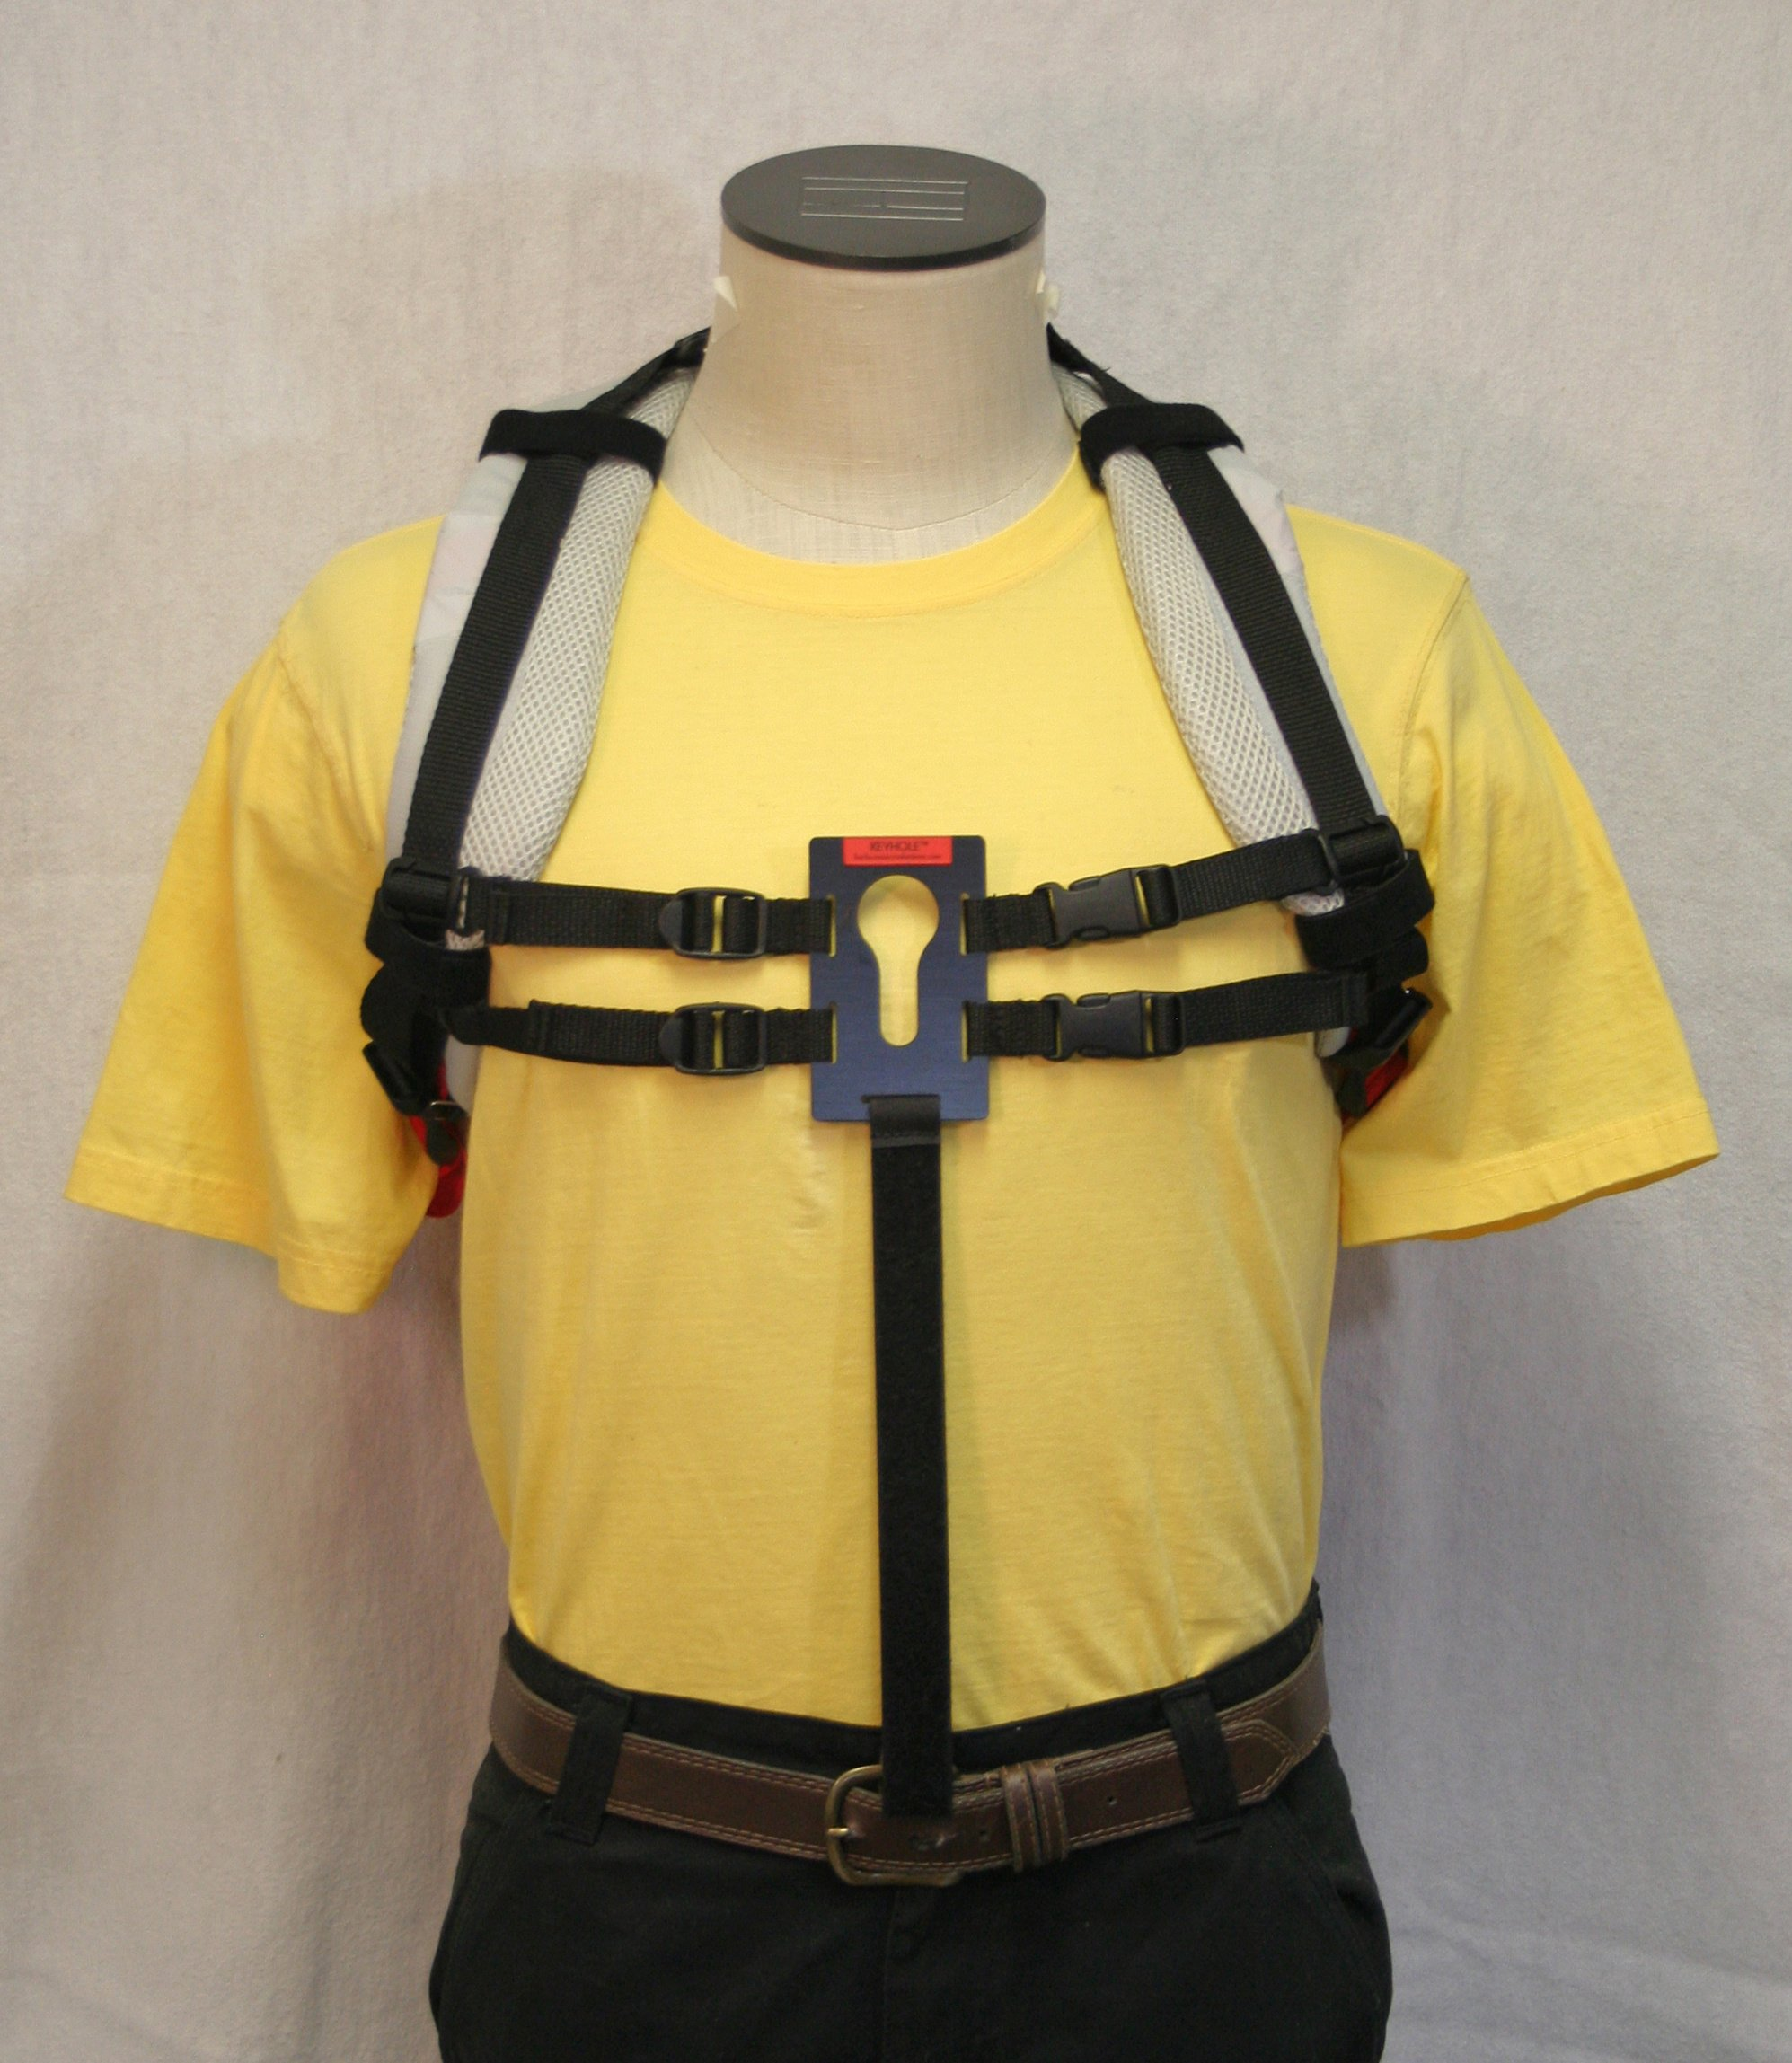 UNIVERSAL KEYHOLE® attached to backpack shoulder straps